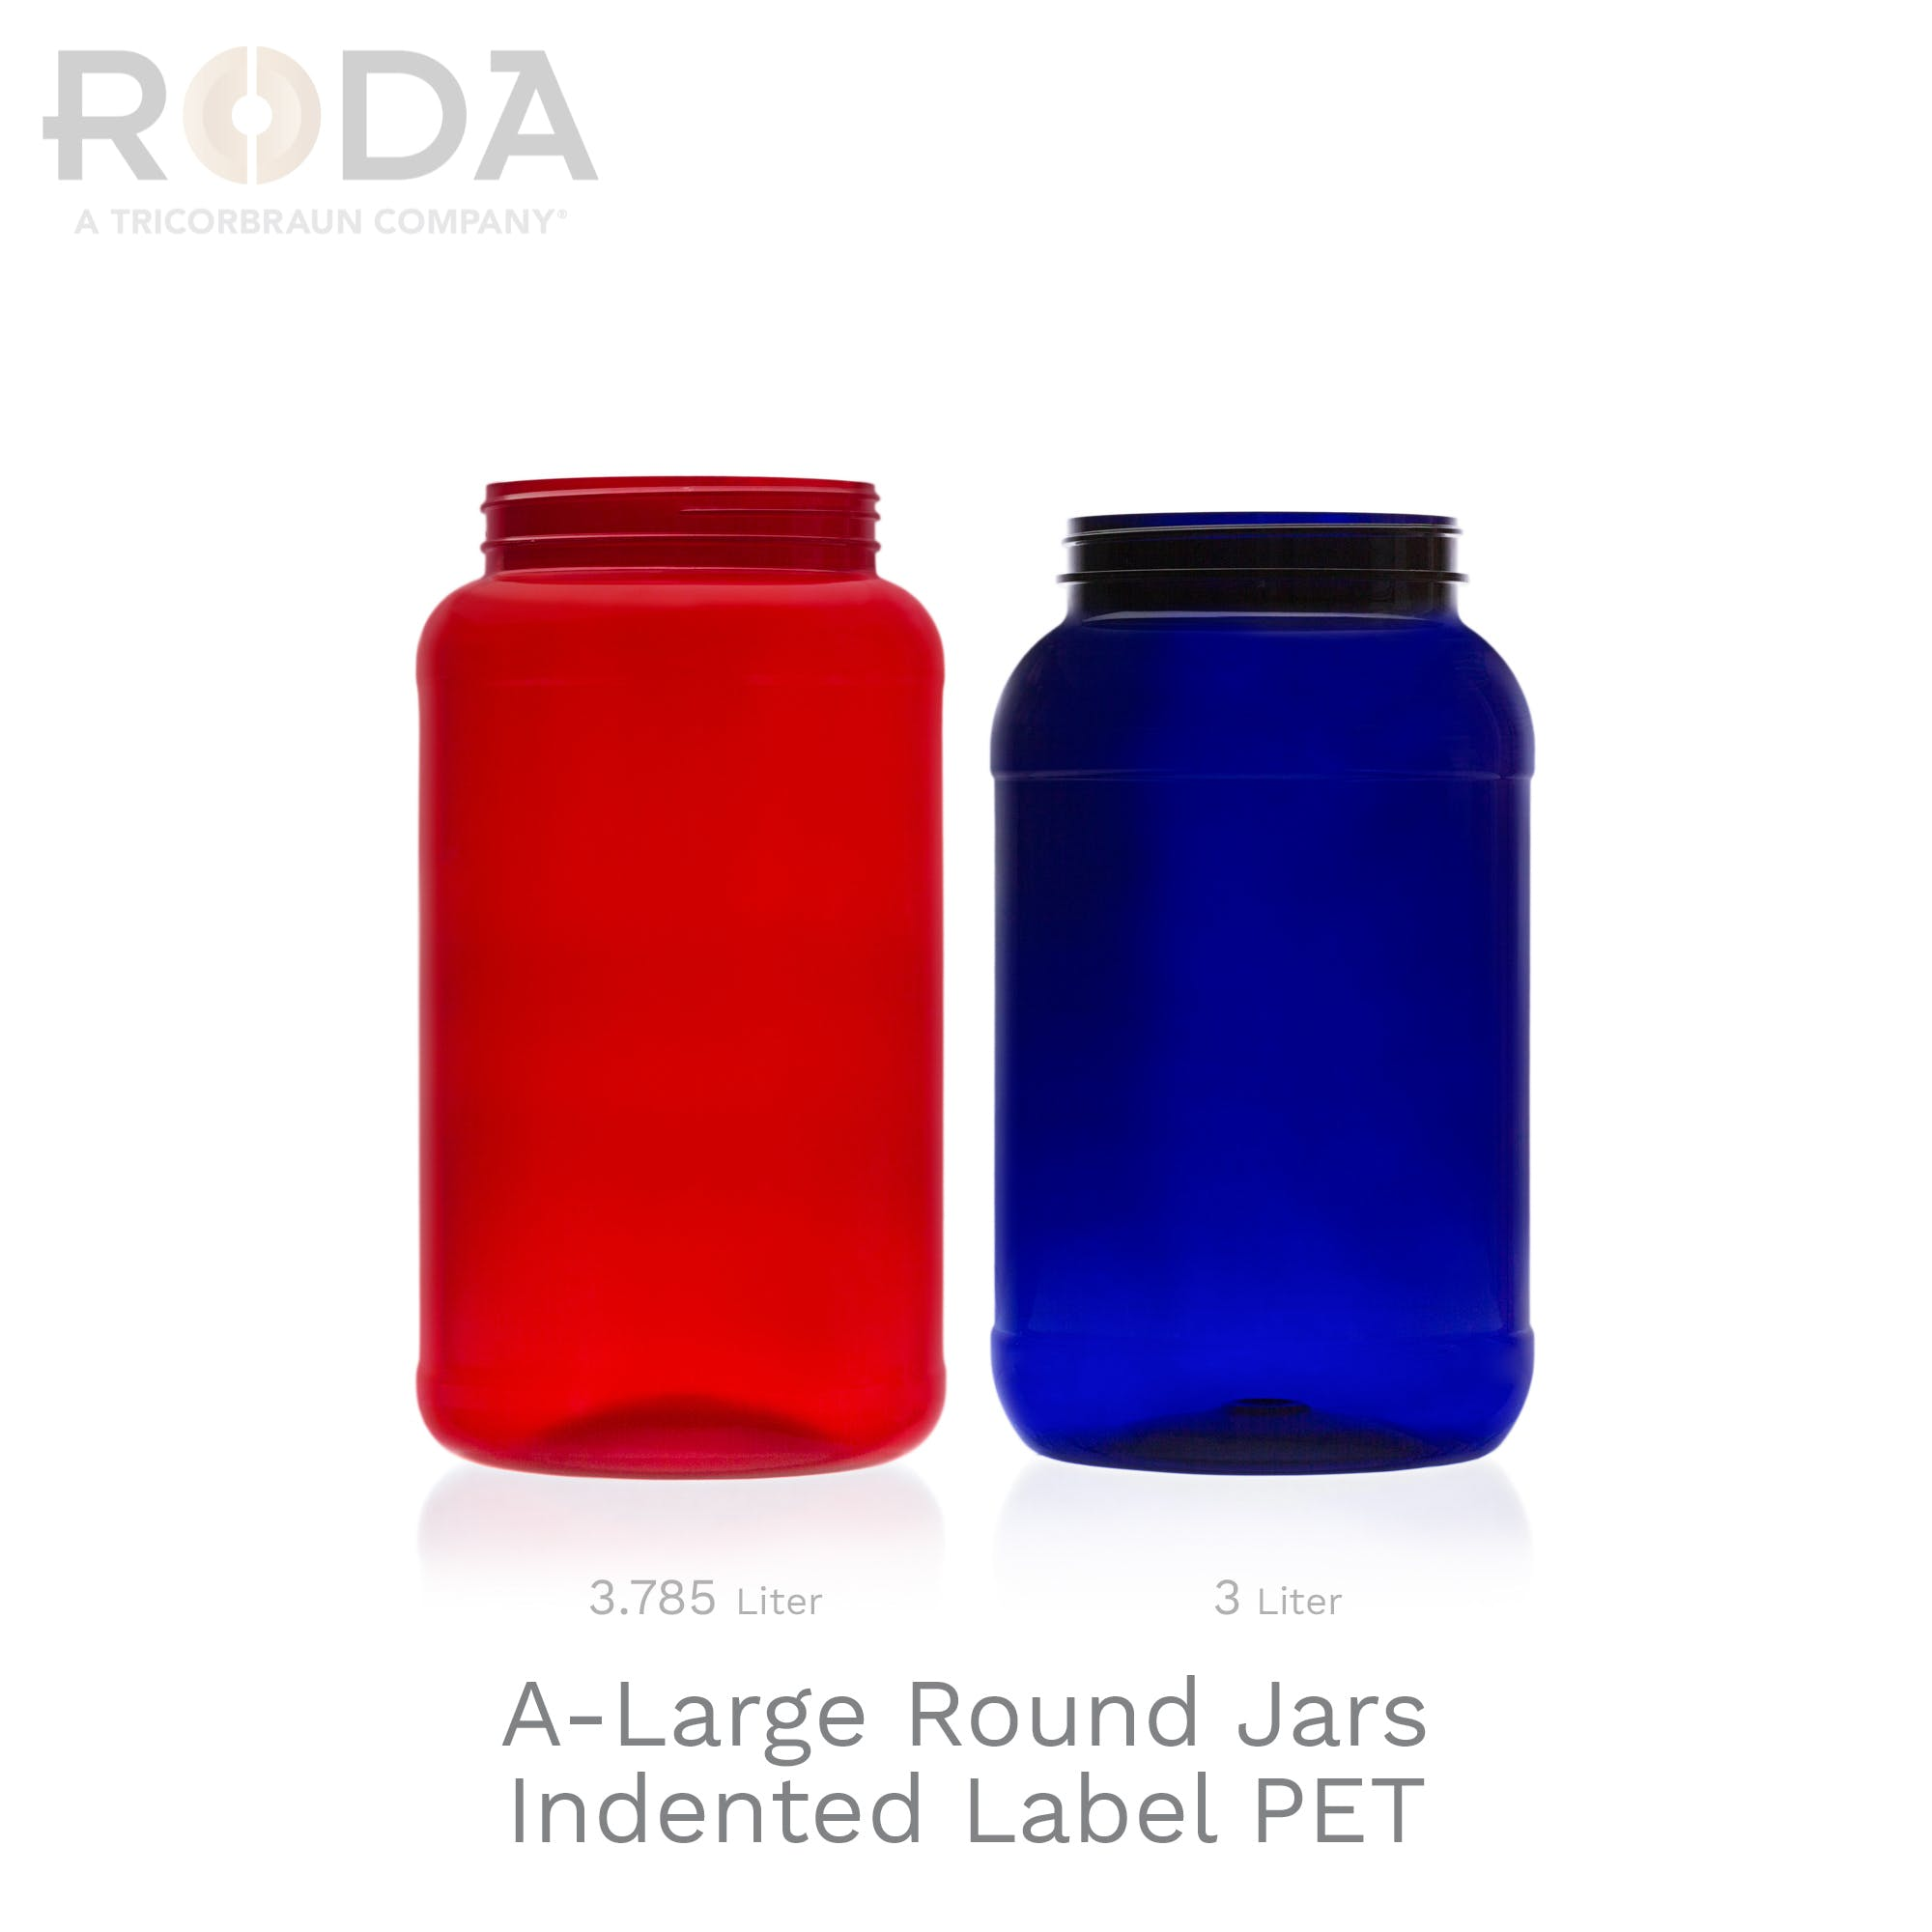 A-Large Rounds Jars Indented Label PET